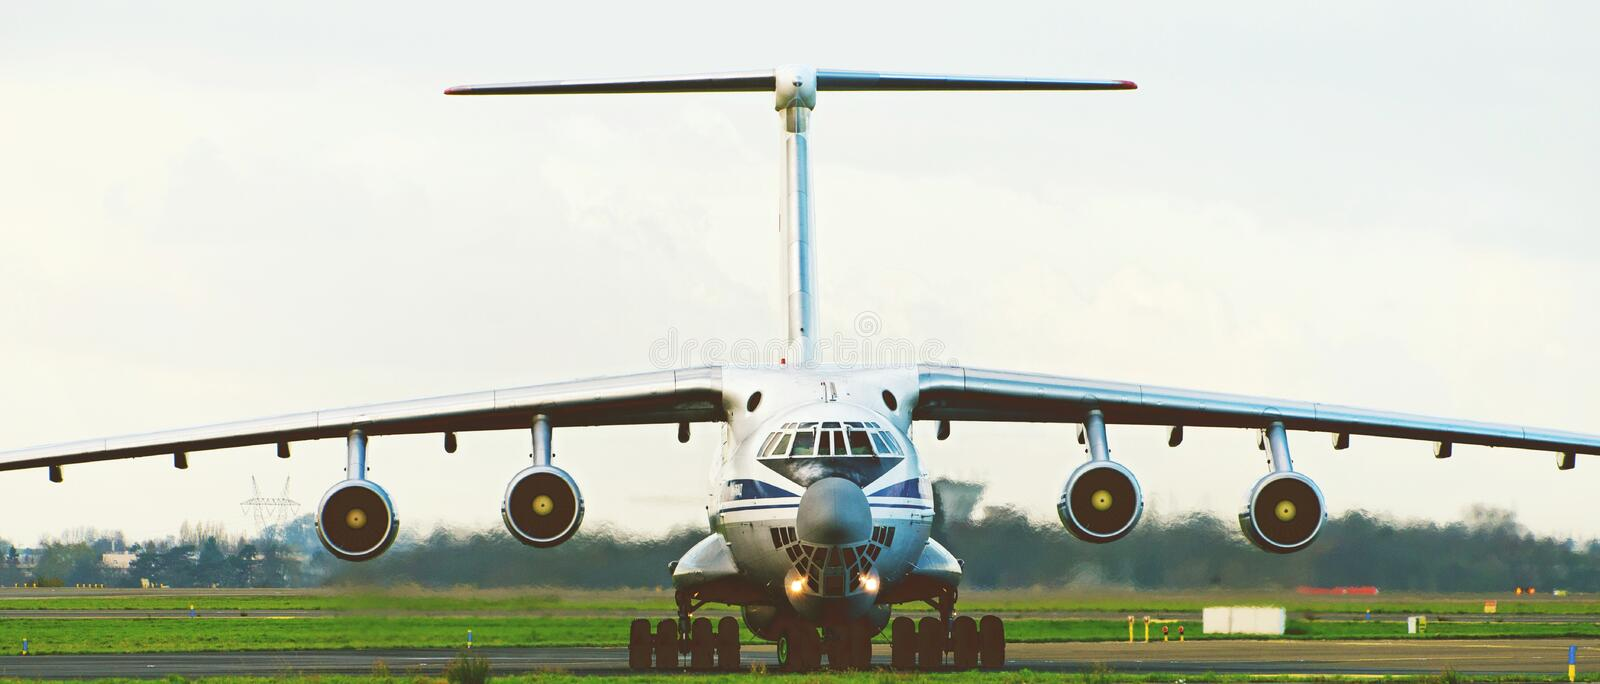 Close-up Photography of an Airplane royalty free stock image